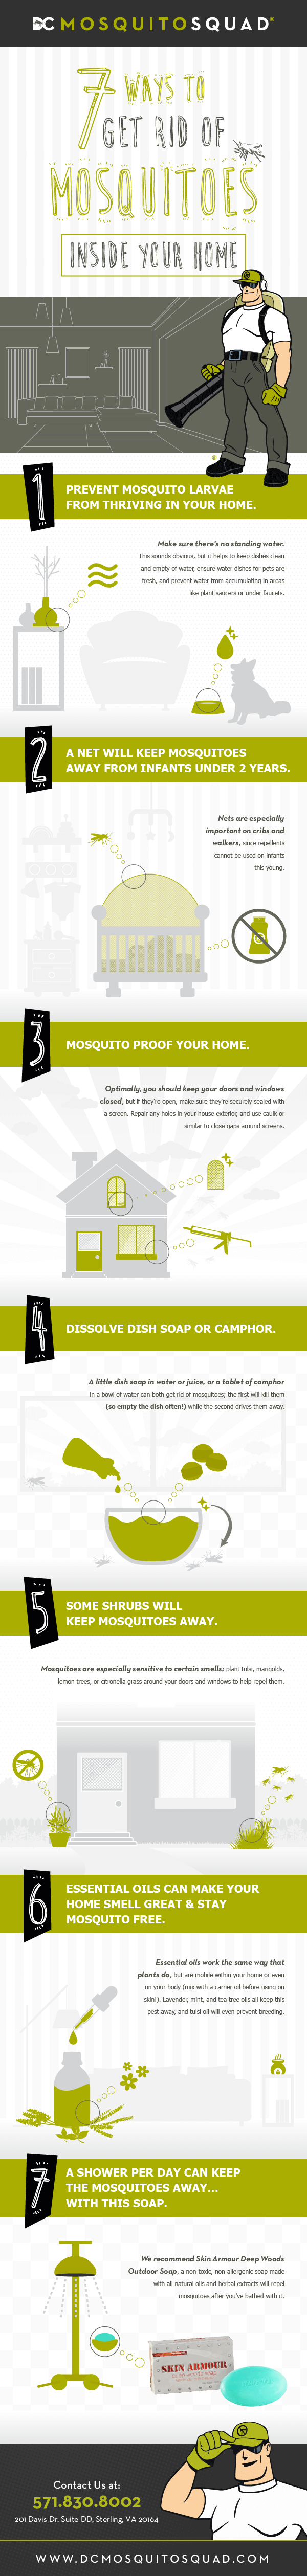 Infographic showing 7 Ways to Get Rid of Mosquitoes Inside Your Home